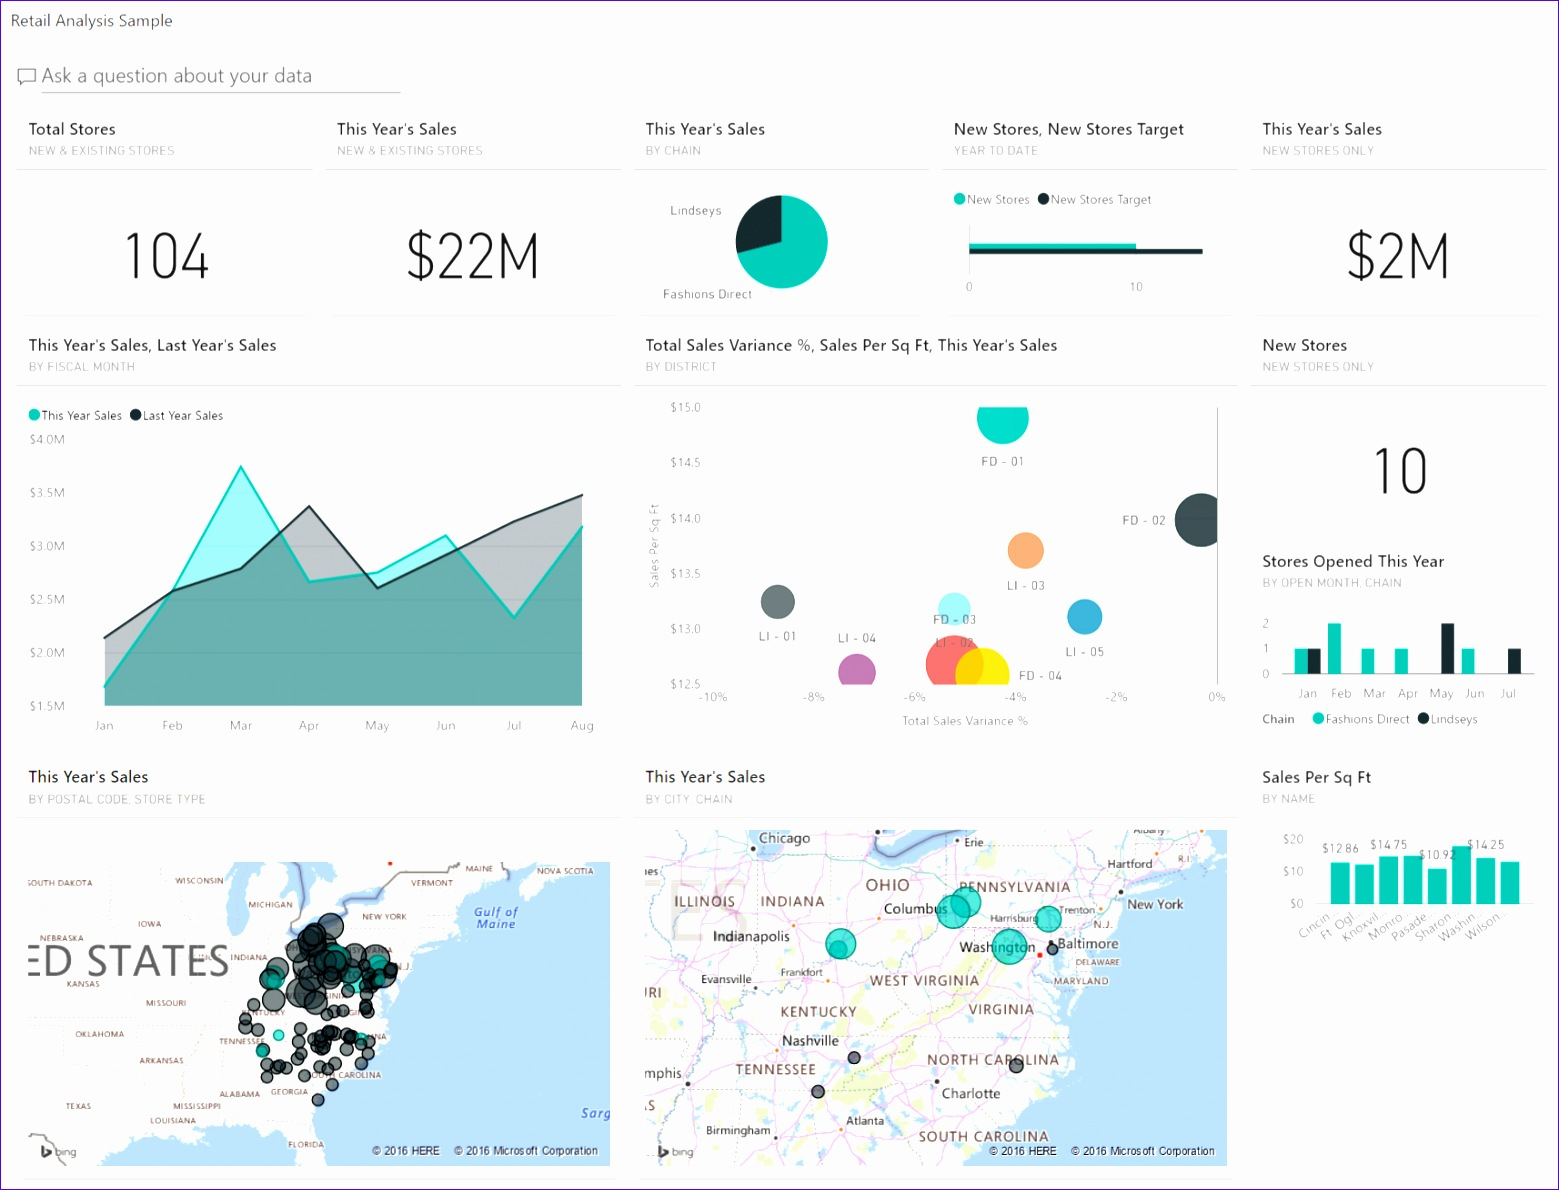 Financial Dashboard Excel Template Ssccu Awesome Retail Analysis Sample for Power Bi Take A tour